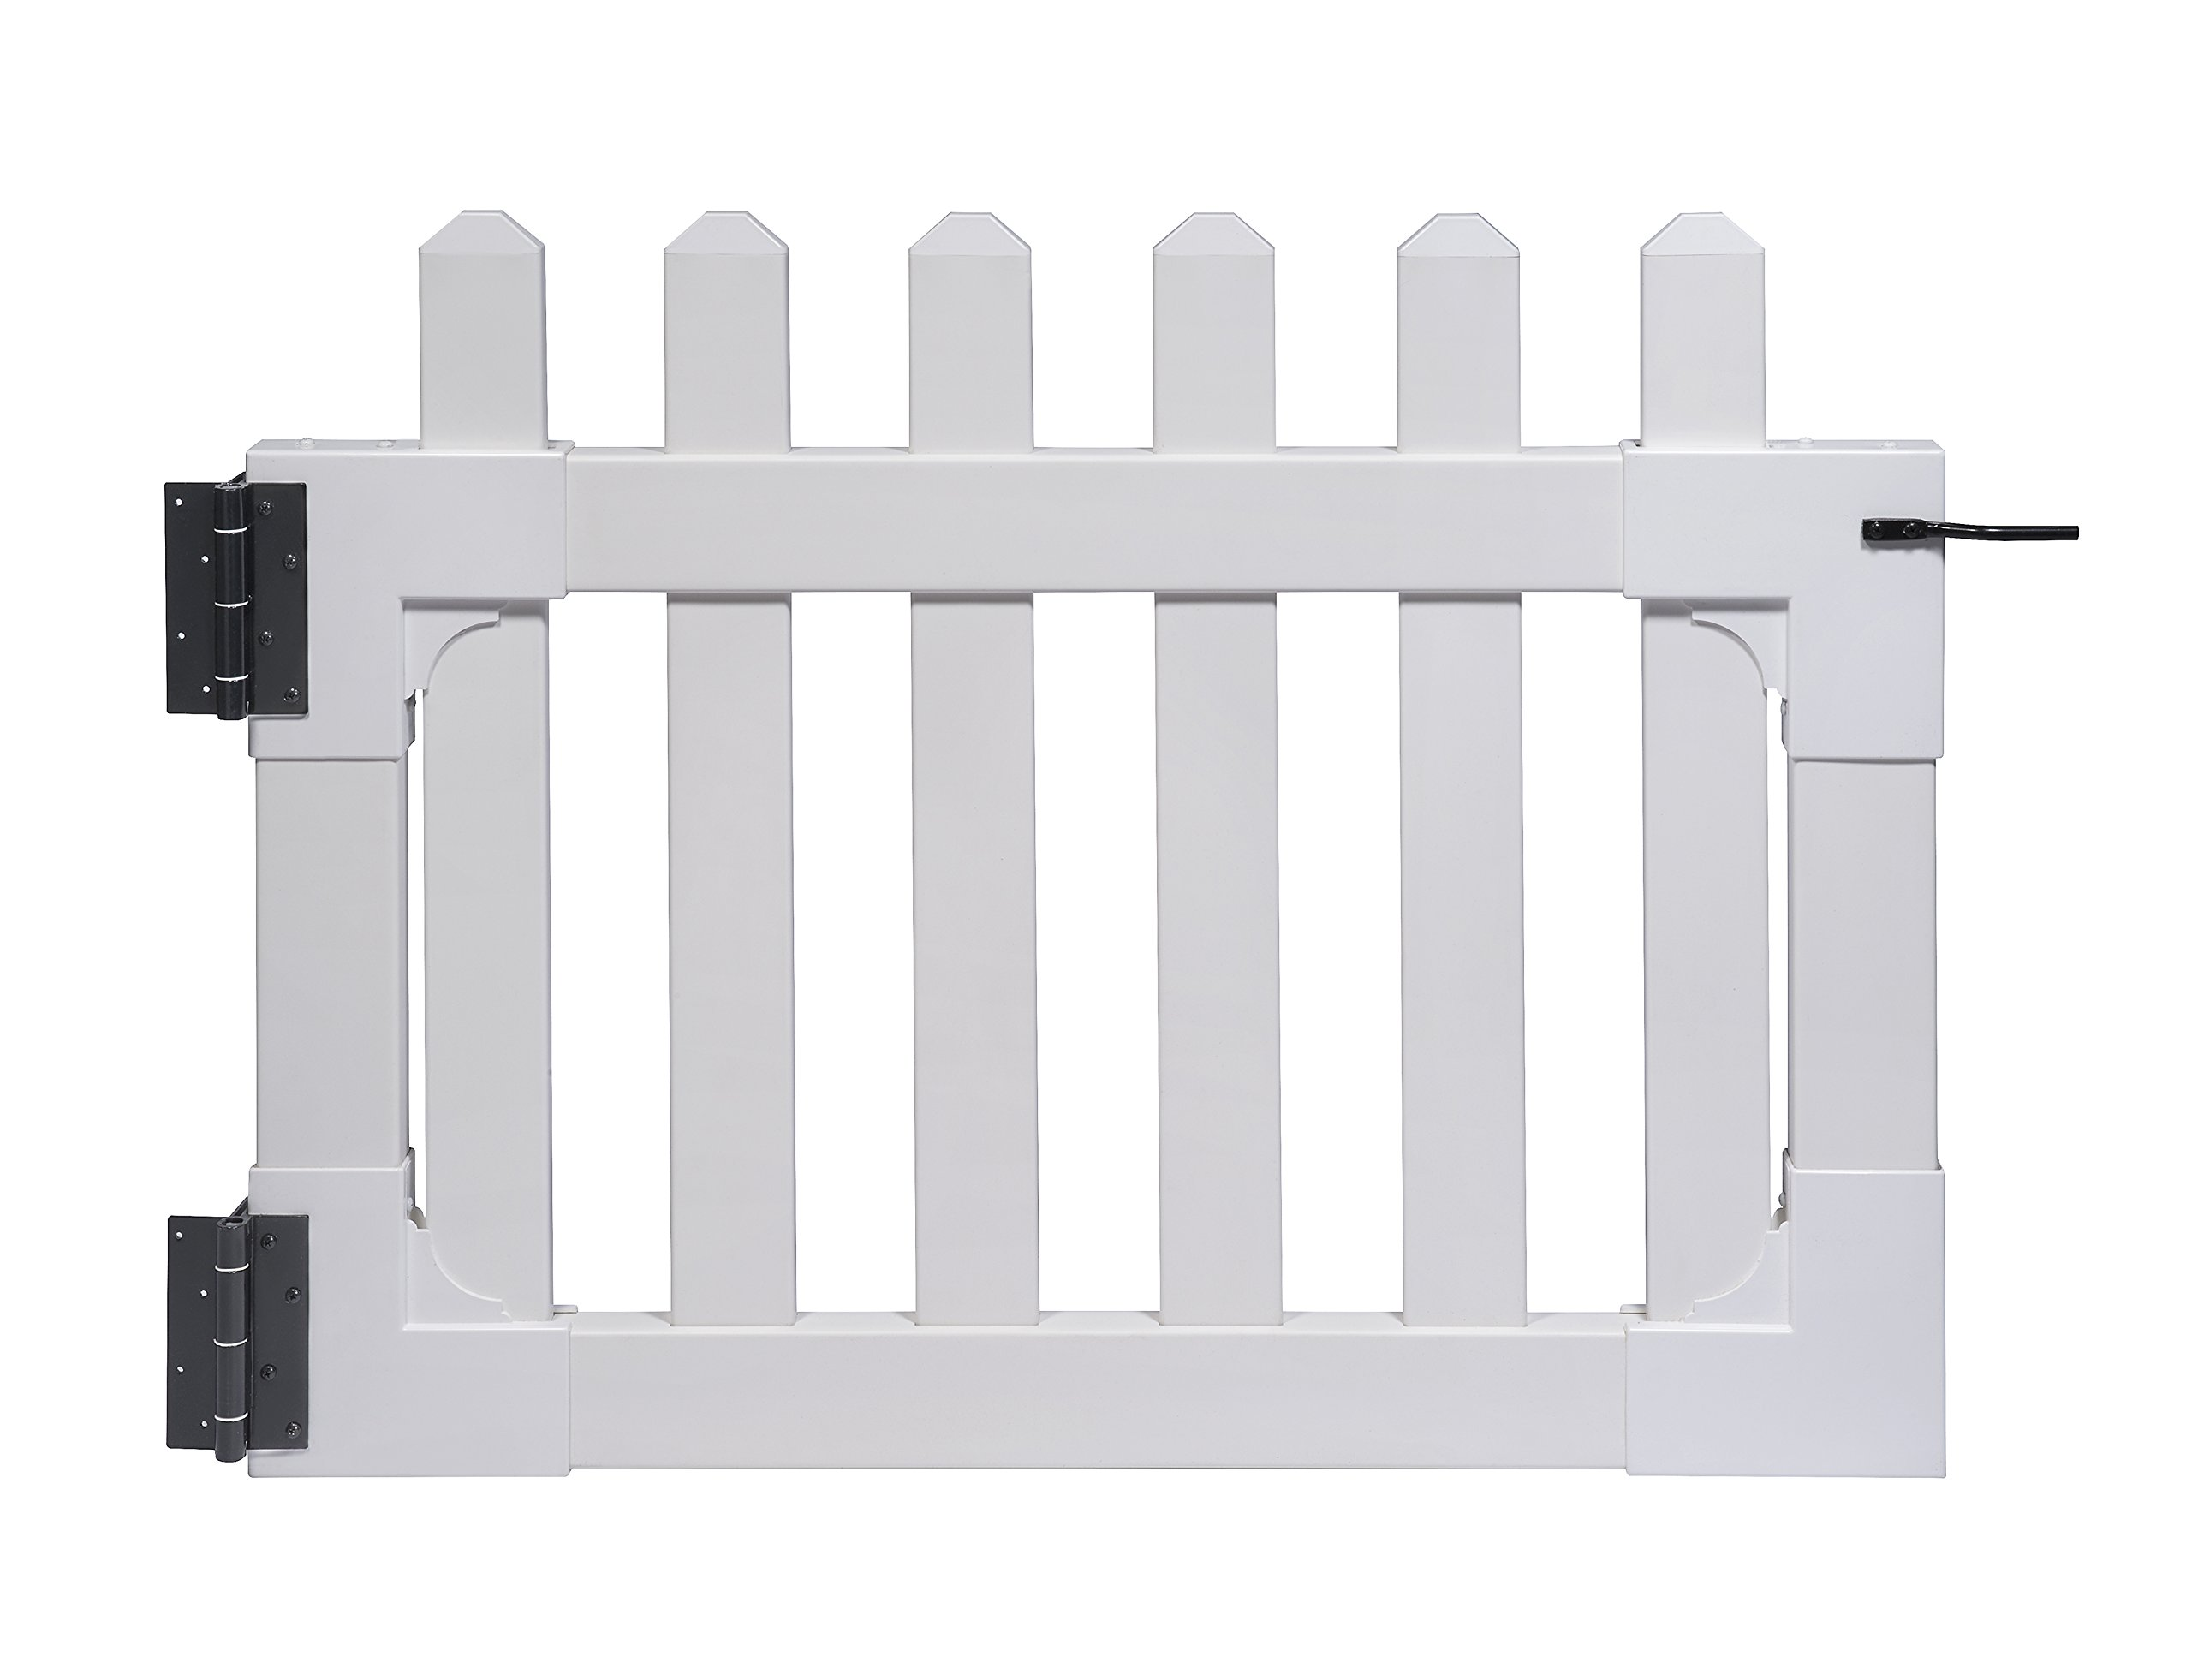 Zippity Outdoor Products ZP19004 Newport Vinyl Picket Unassembled Gate, 31''H x 41''W'', White by Zippity Outdoor Products